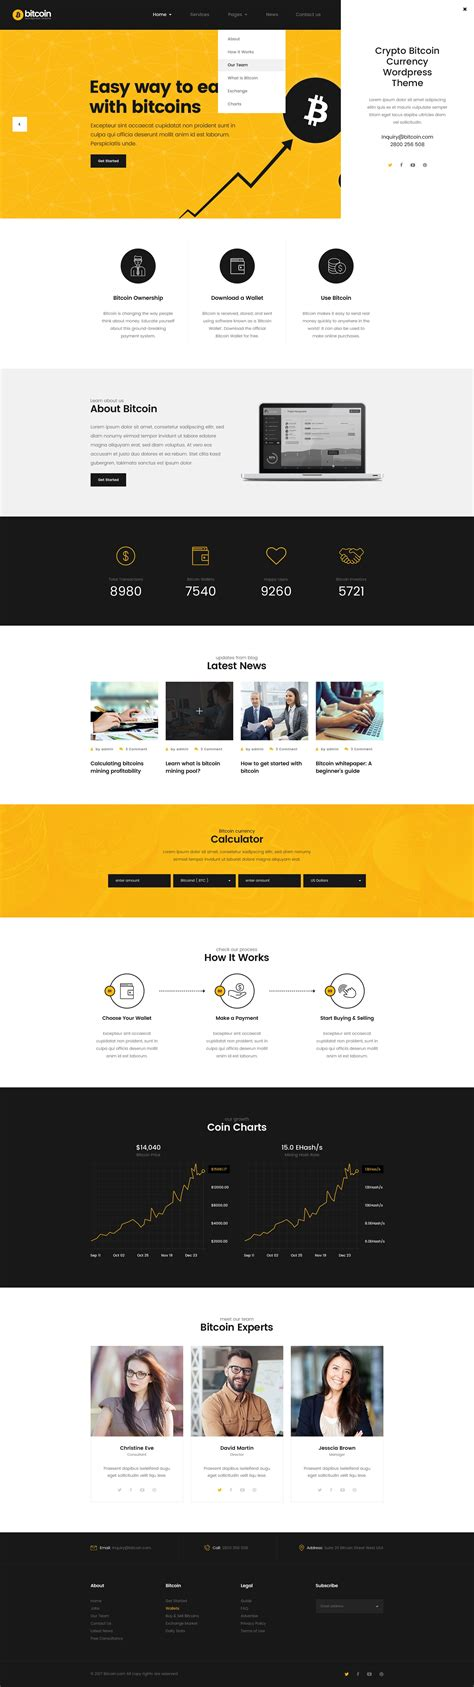 Bcoin,bitcoin website template that you can use it as bitcoin exchange website template. Bitcoin - ICO and Cryptocurrency PSD Template | Bitcoin, Web template design, Psd templates